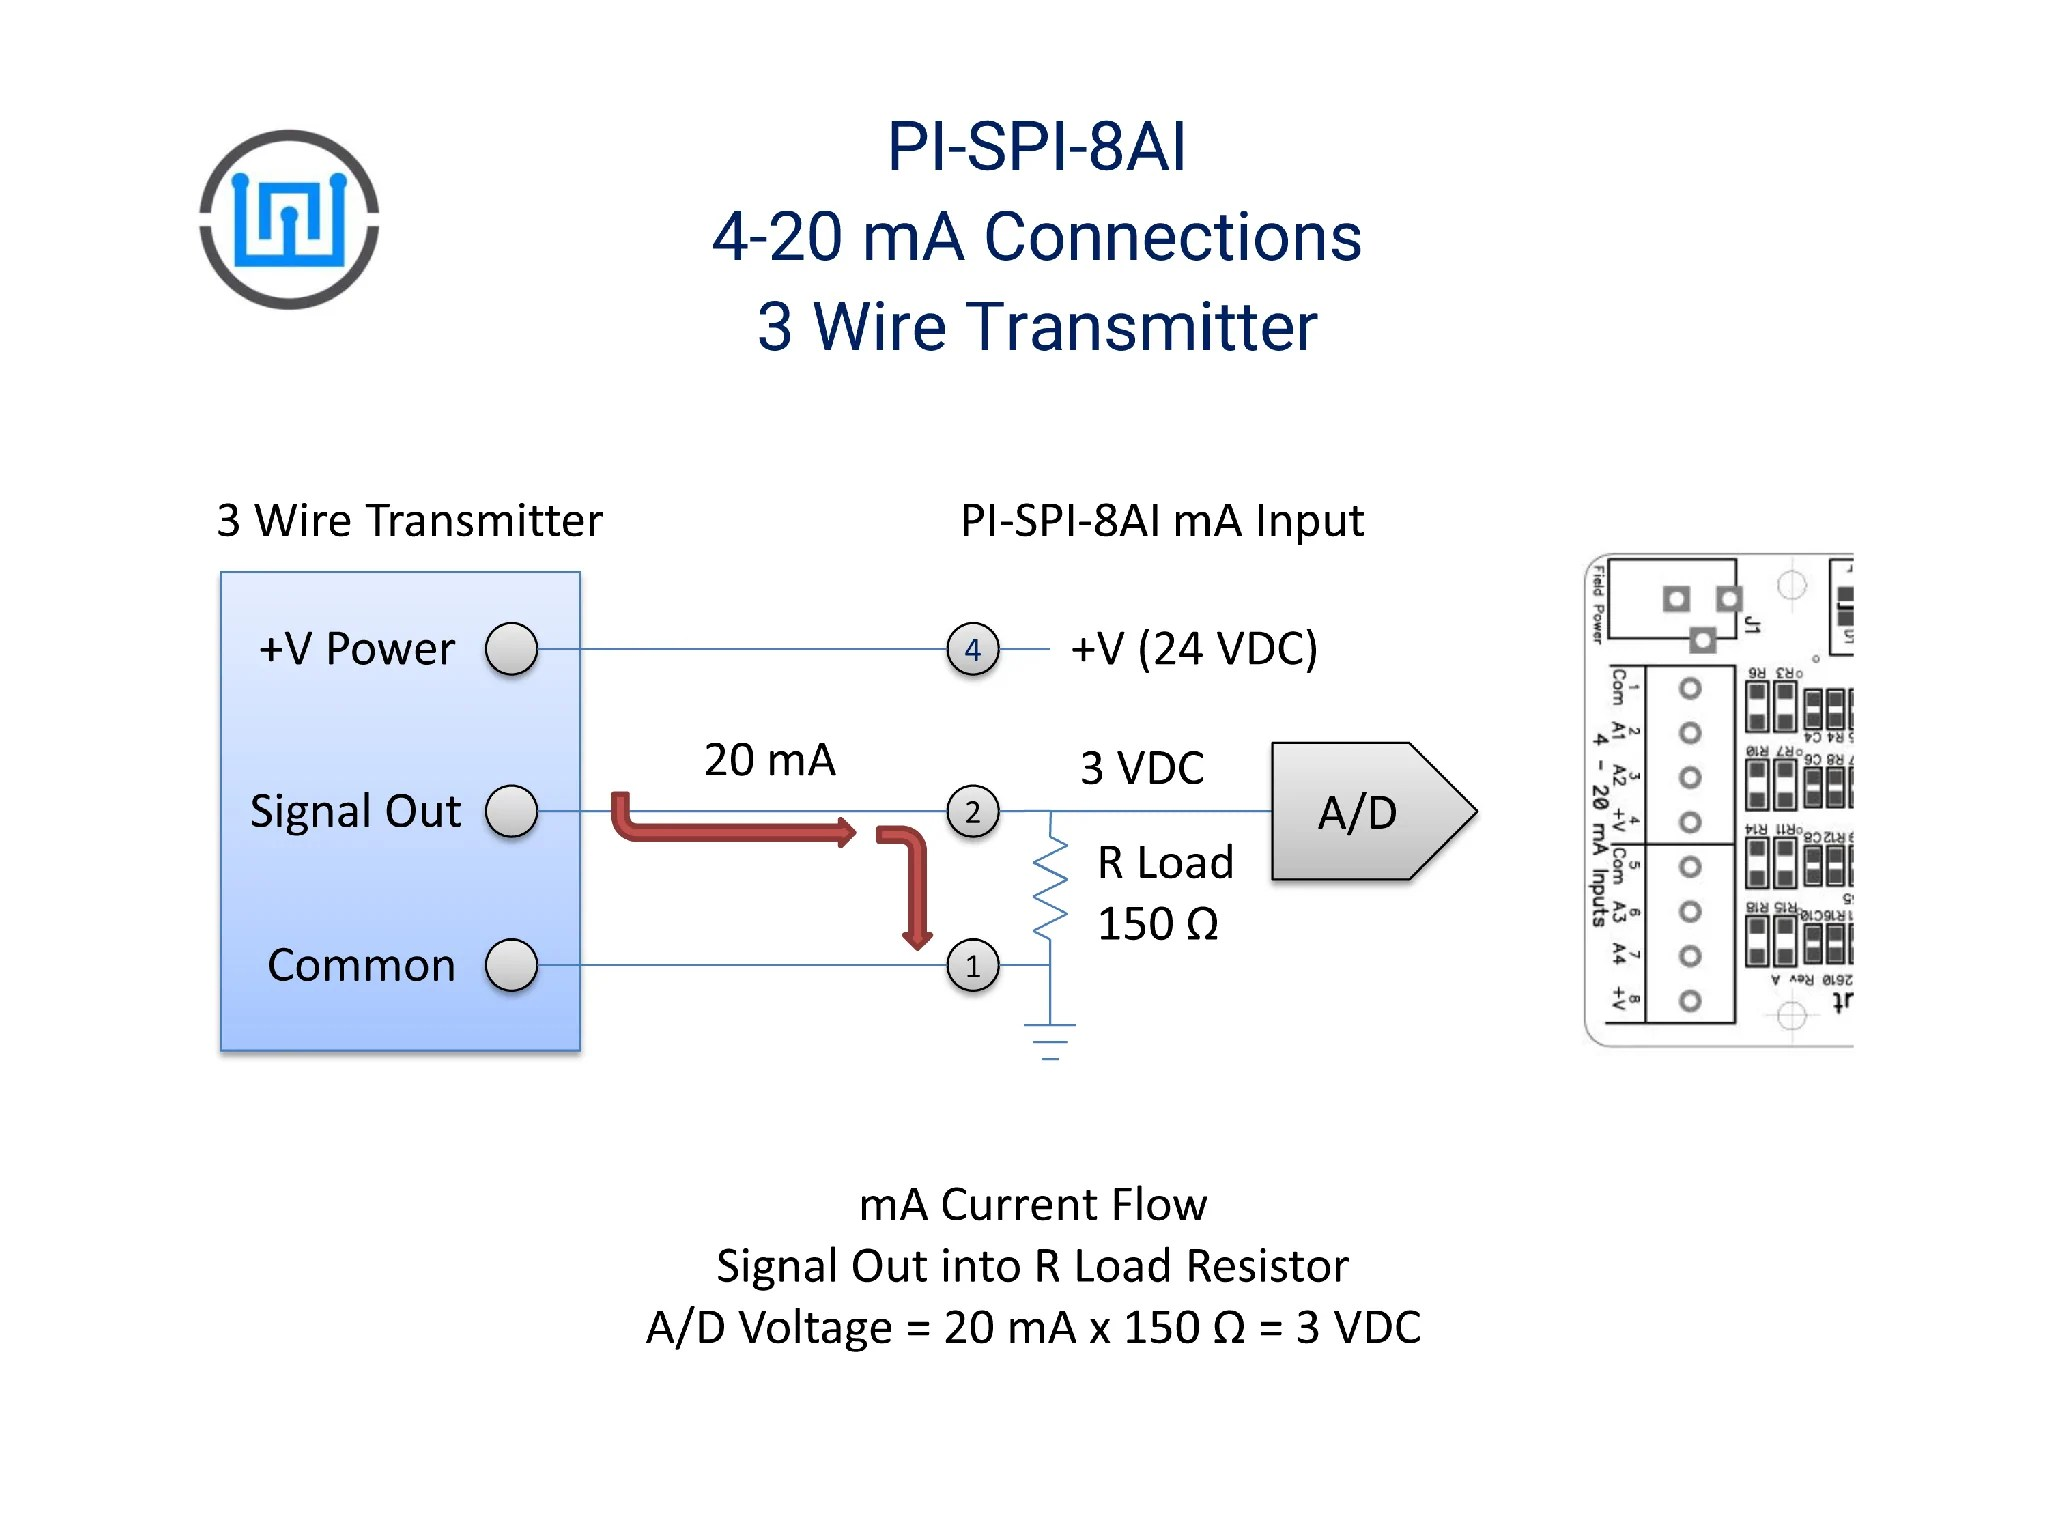 medium resolution of pi spi 8ai and a 3 wire transmitter